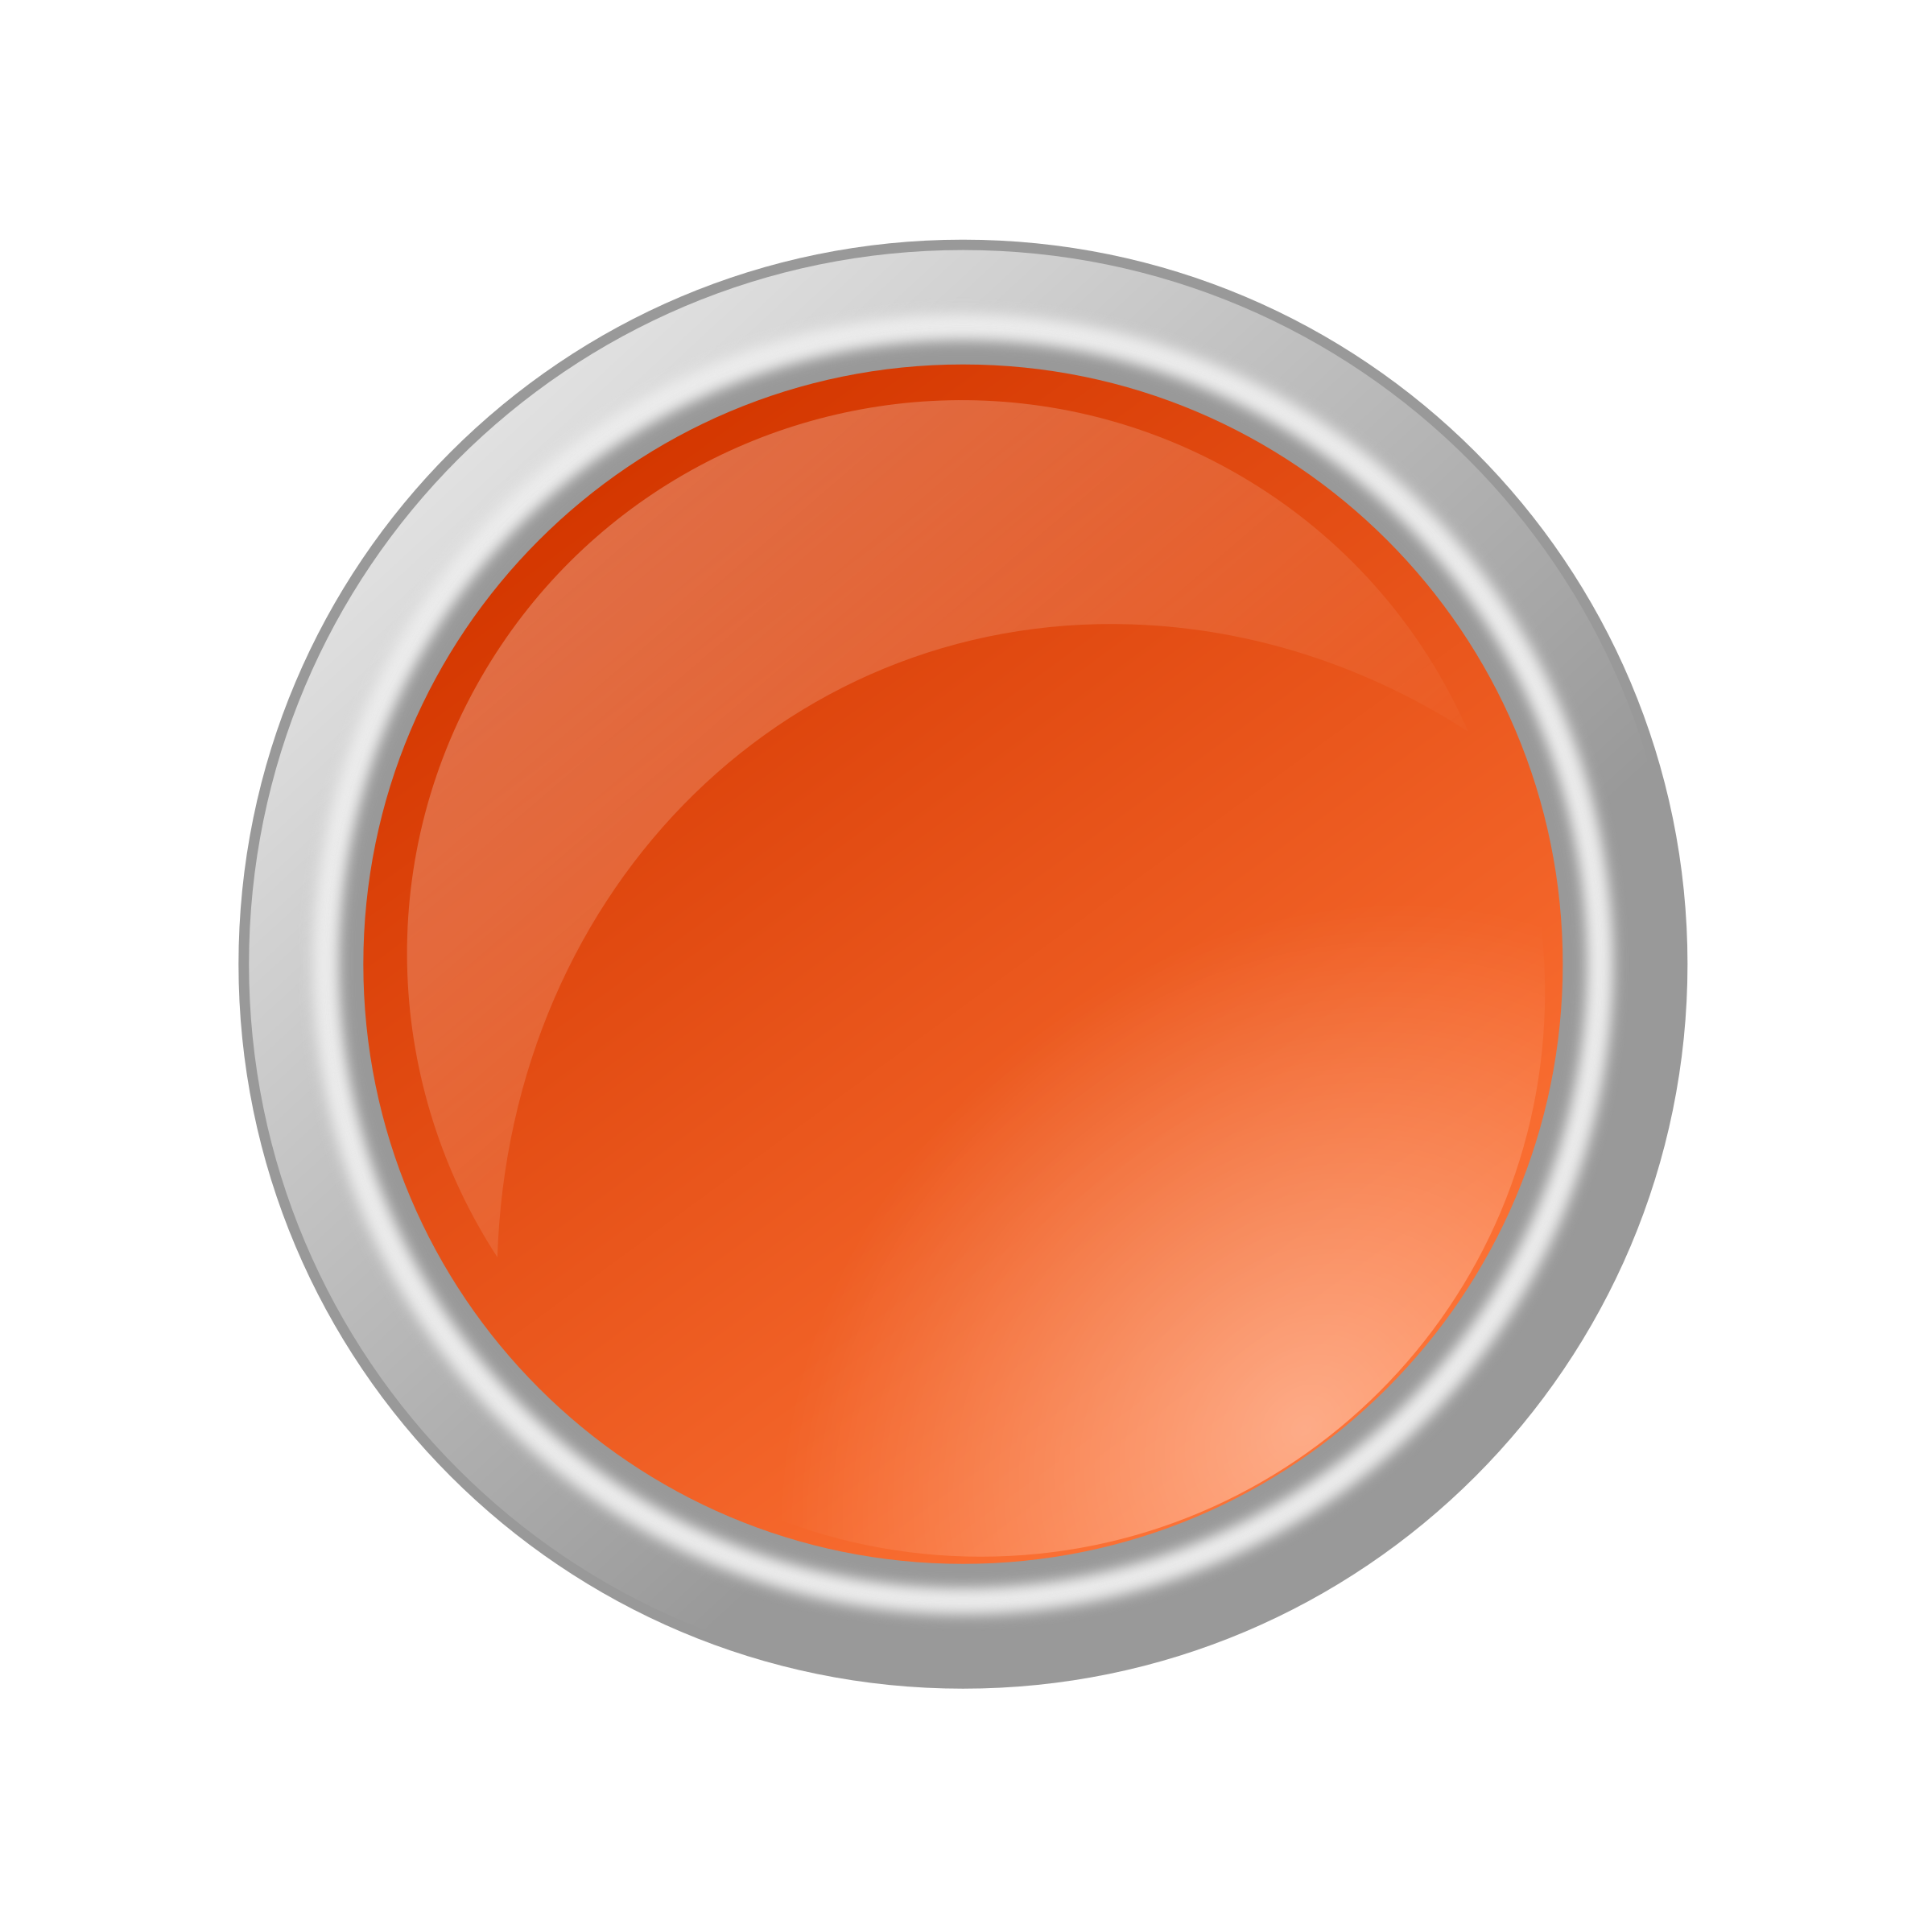 Glossy big image png. Button clipart orange button